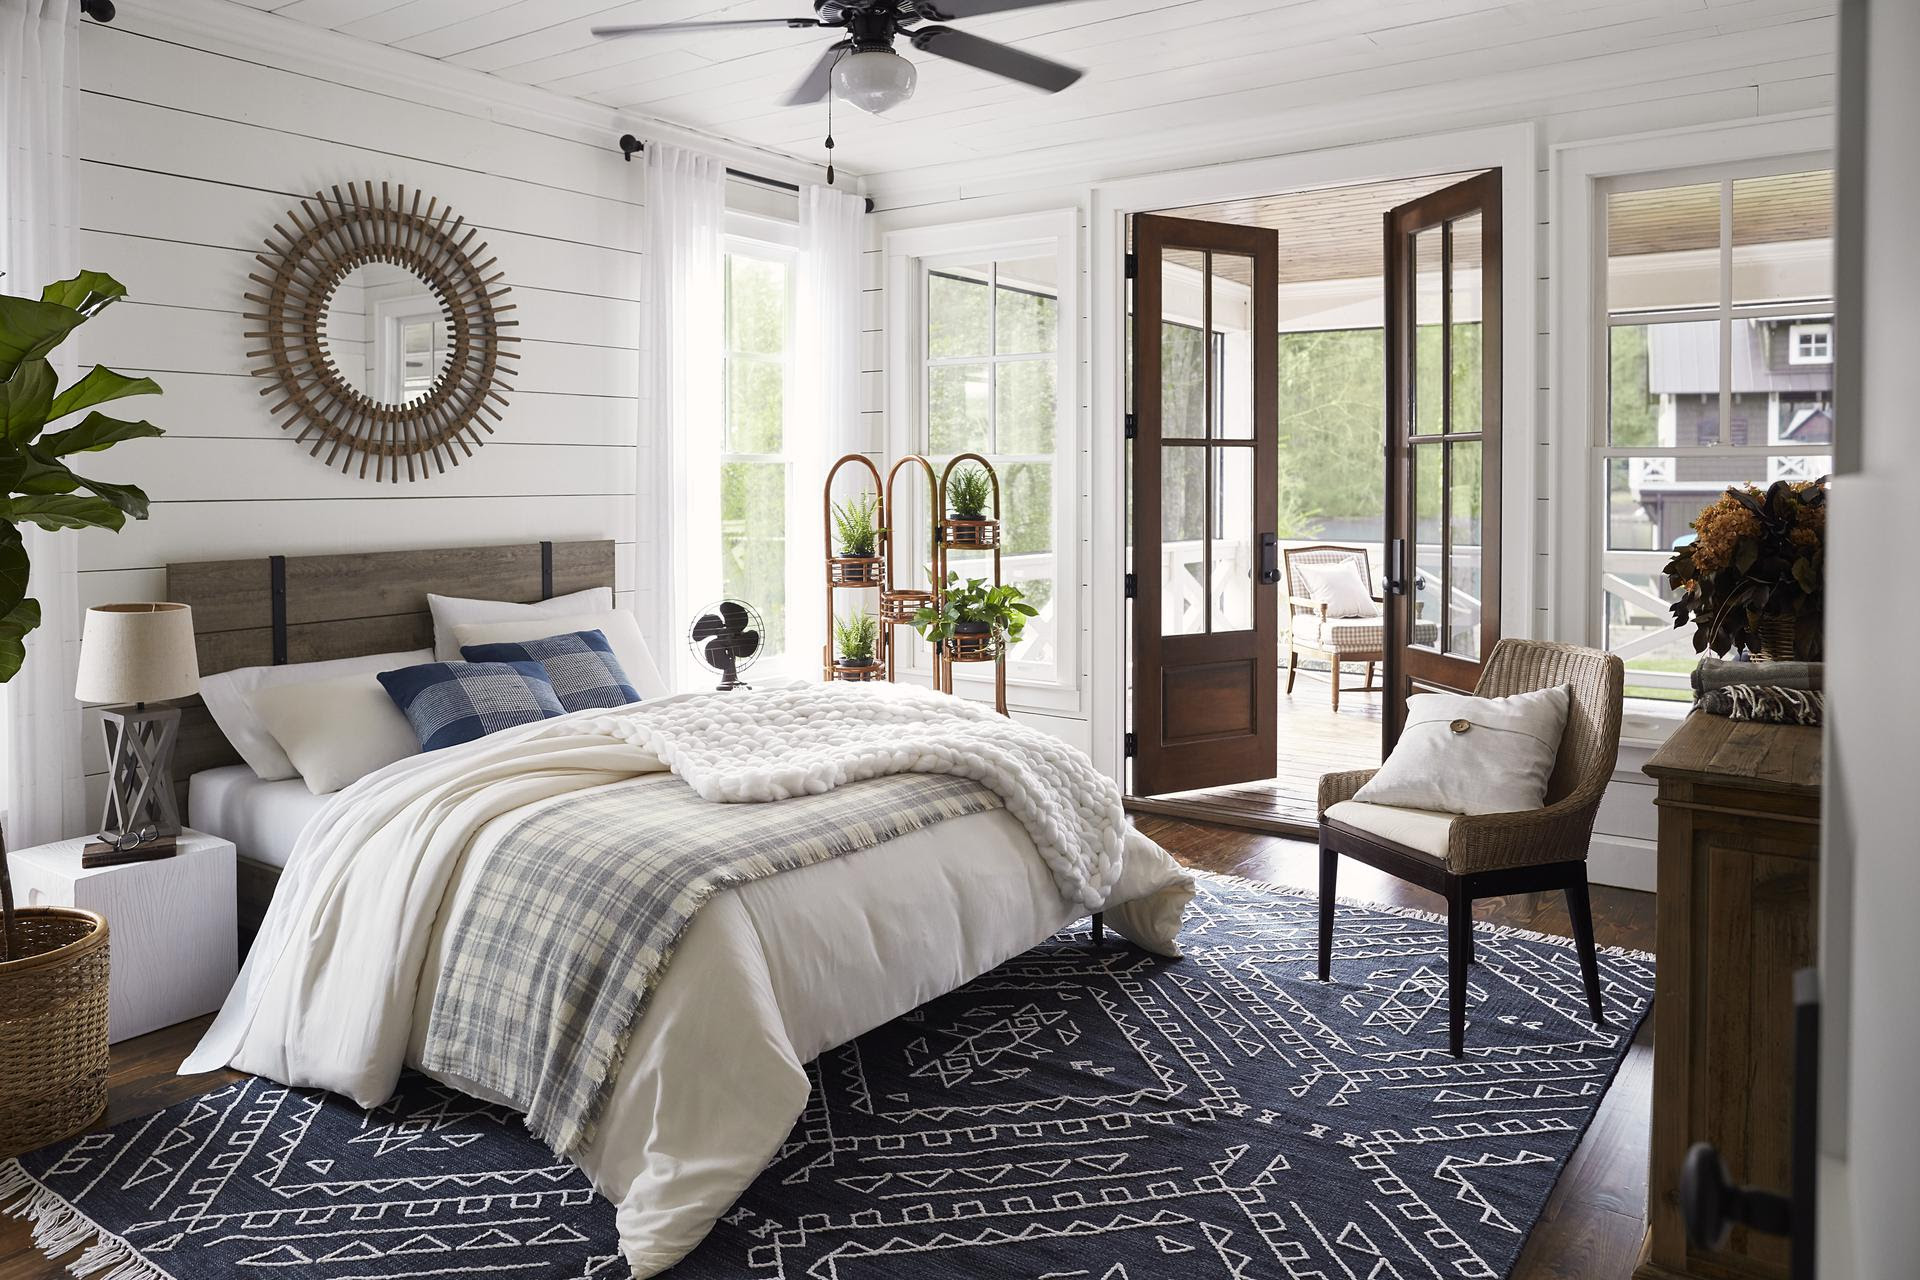 Lake house bedroom paint color ideas furniture decor - Blue bedroom paint ideas ...